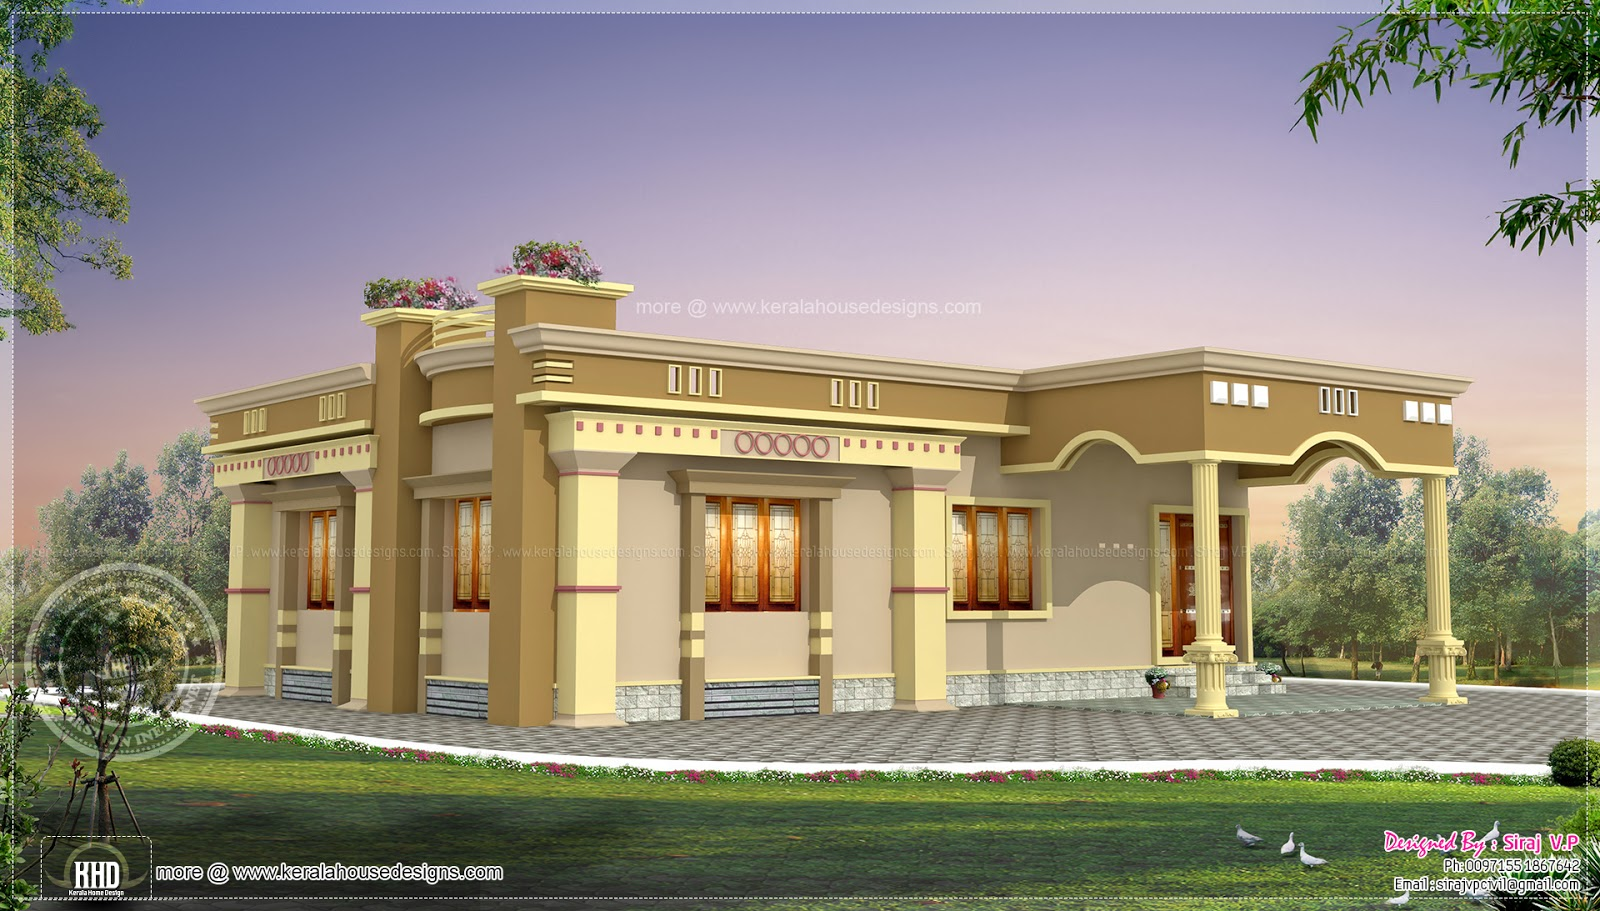 tamilnadu model house - Download Village Indian Small House Design PNG